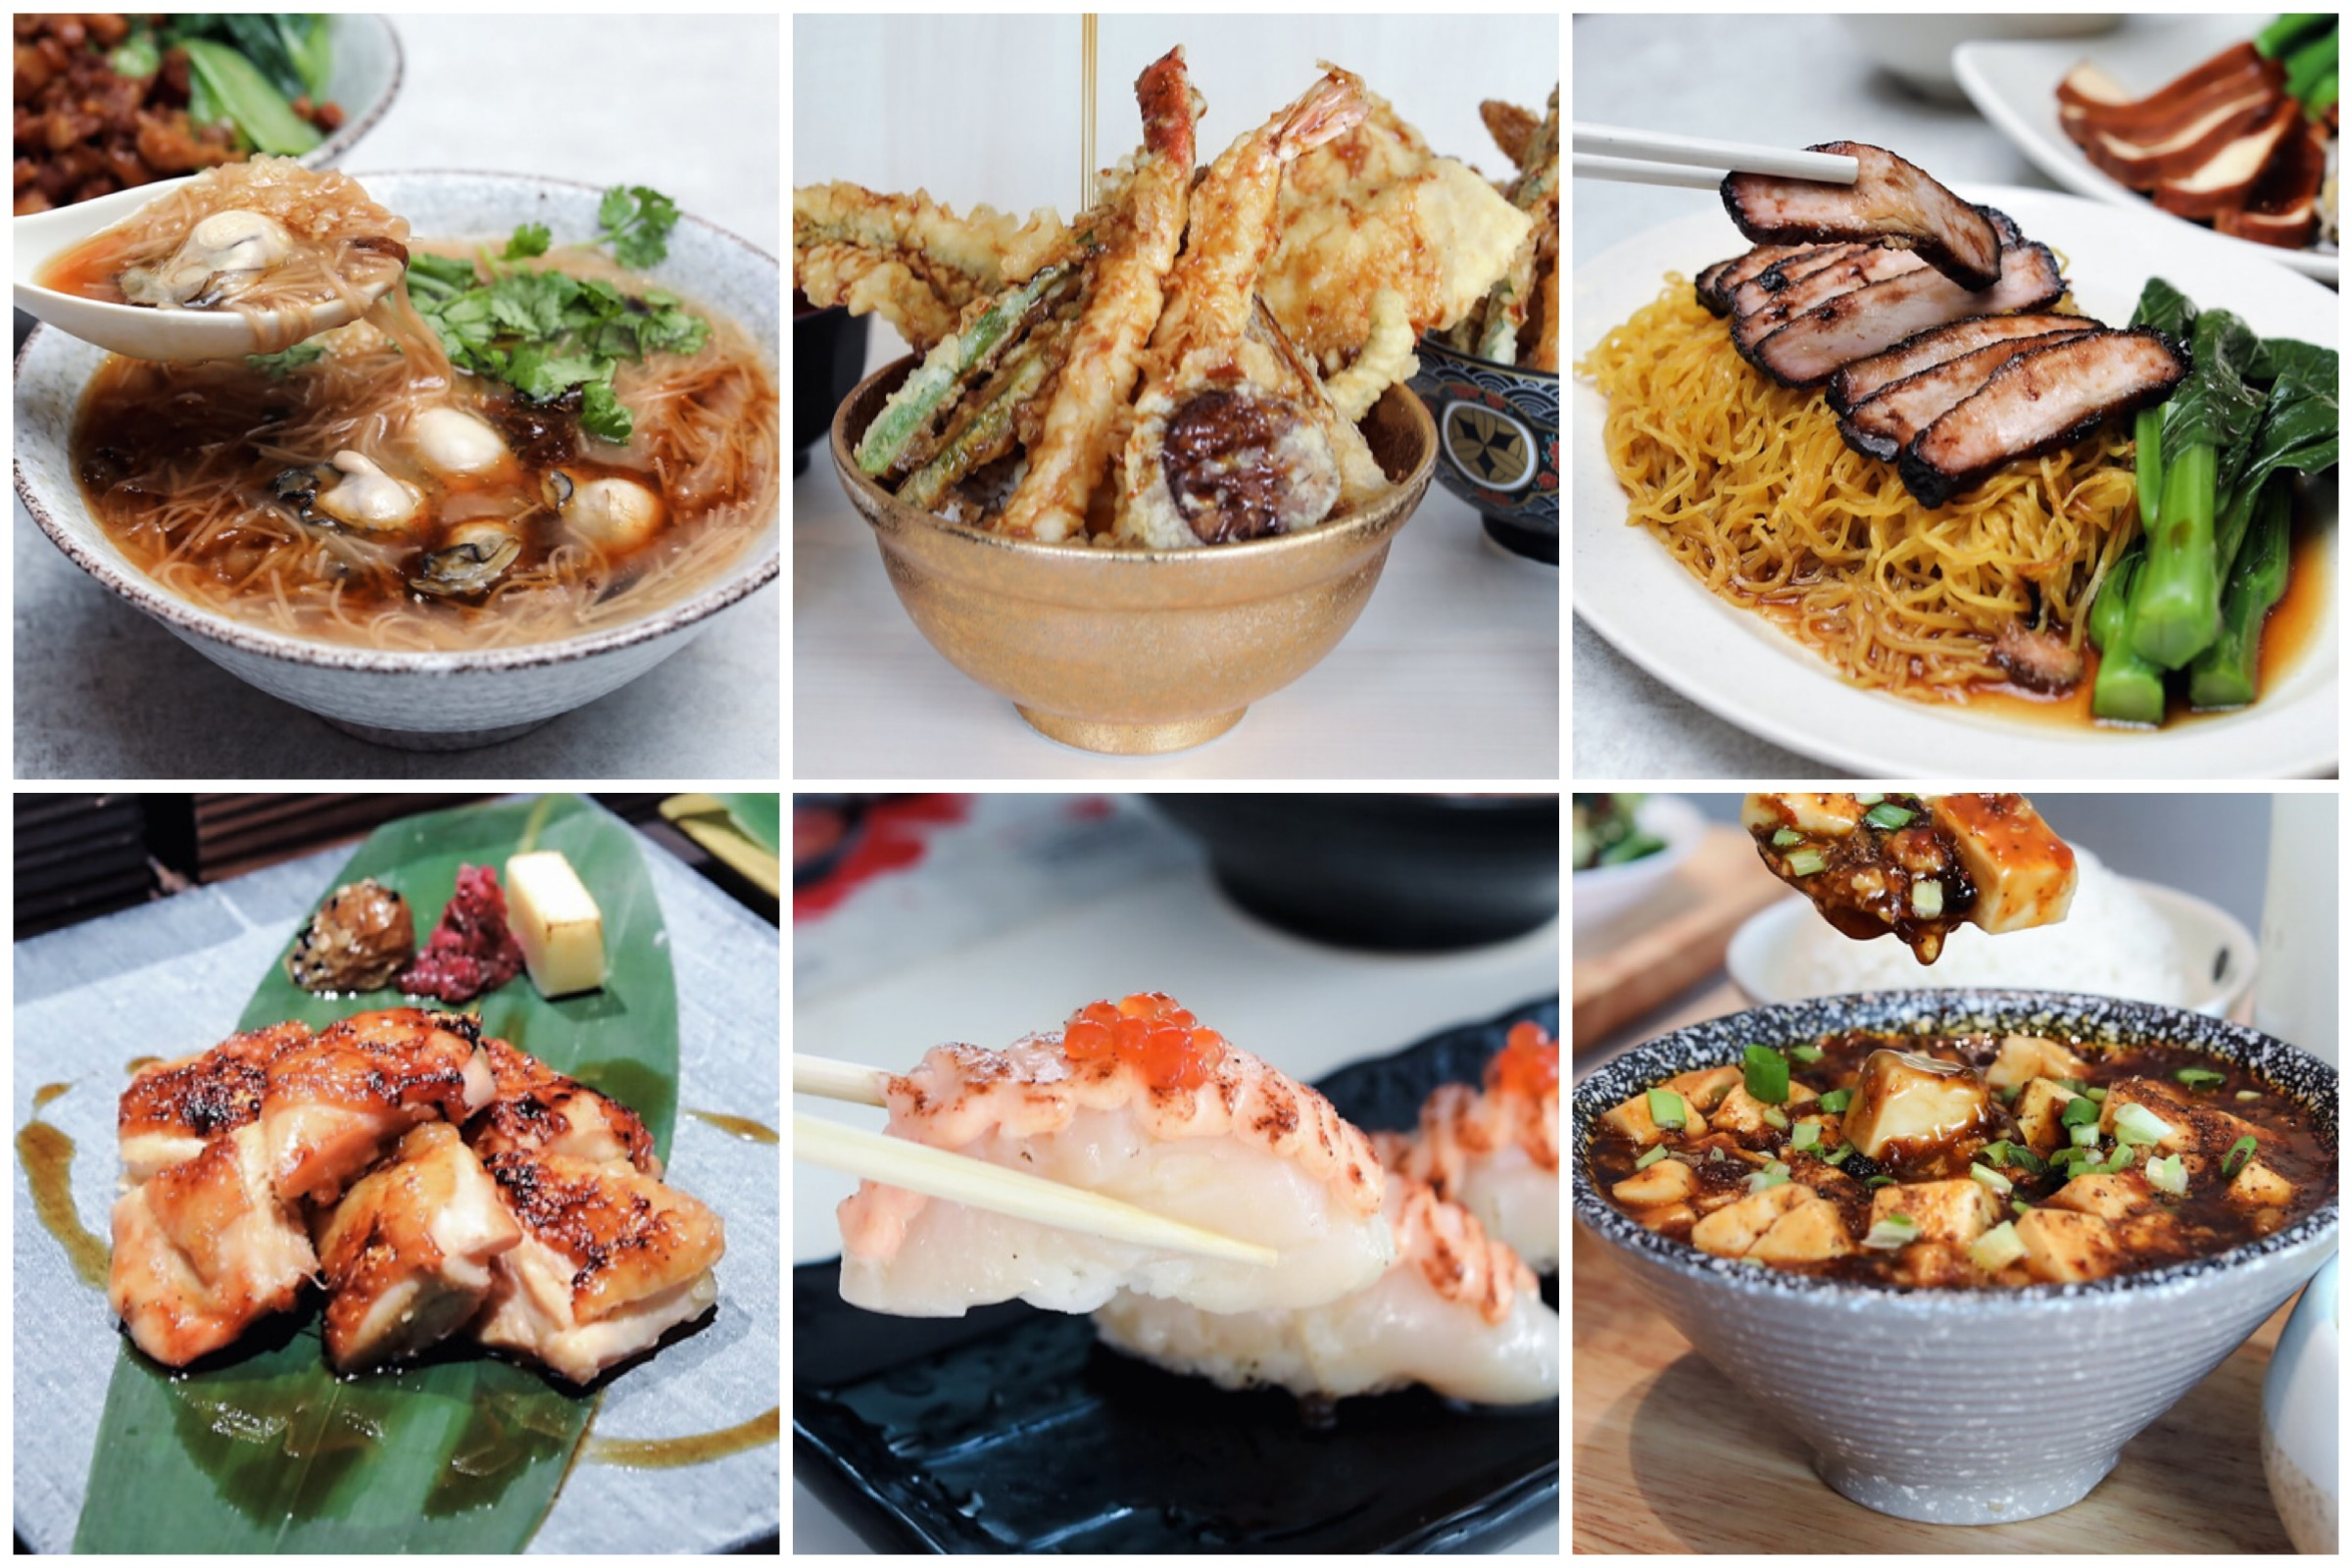 Paya Lebar Square – 10 Restaurants To Try Including Charcoal